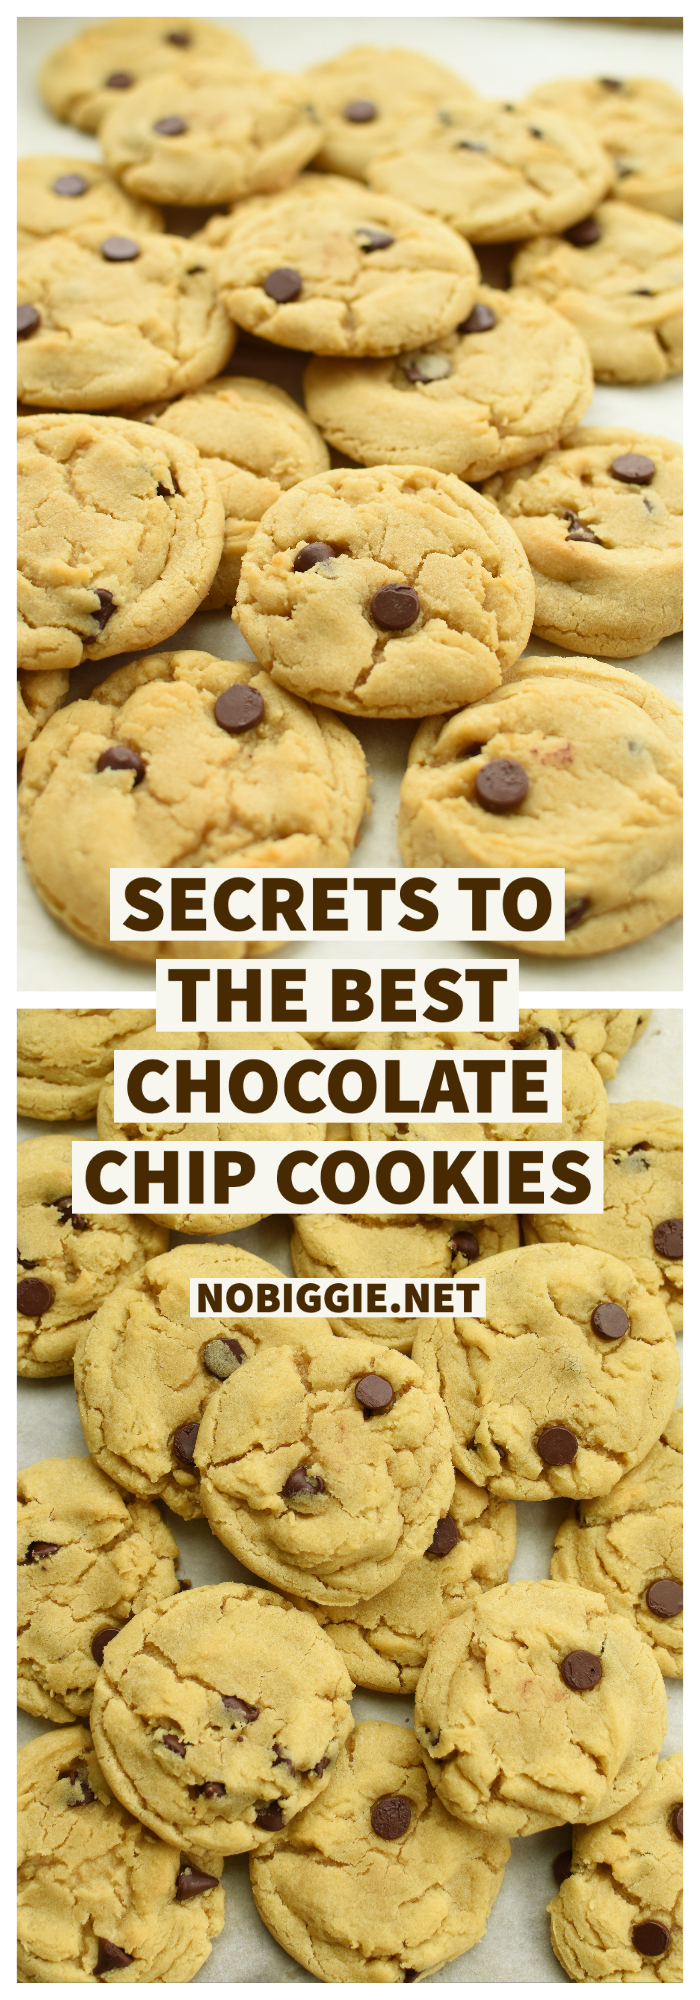 chocolate chip cookies made with butter flavored crisco   NoBiggie.net